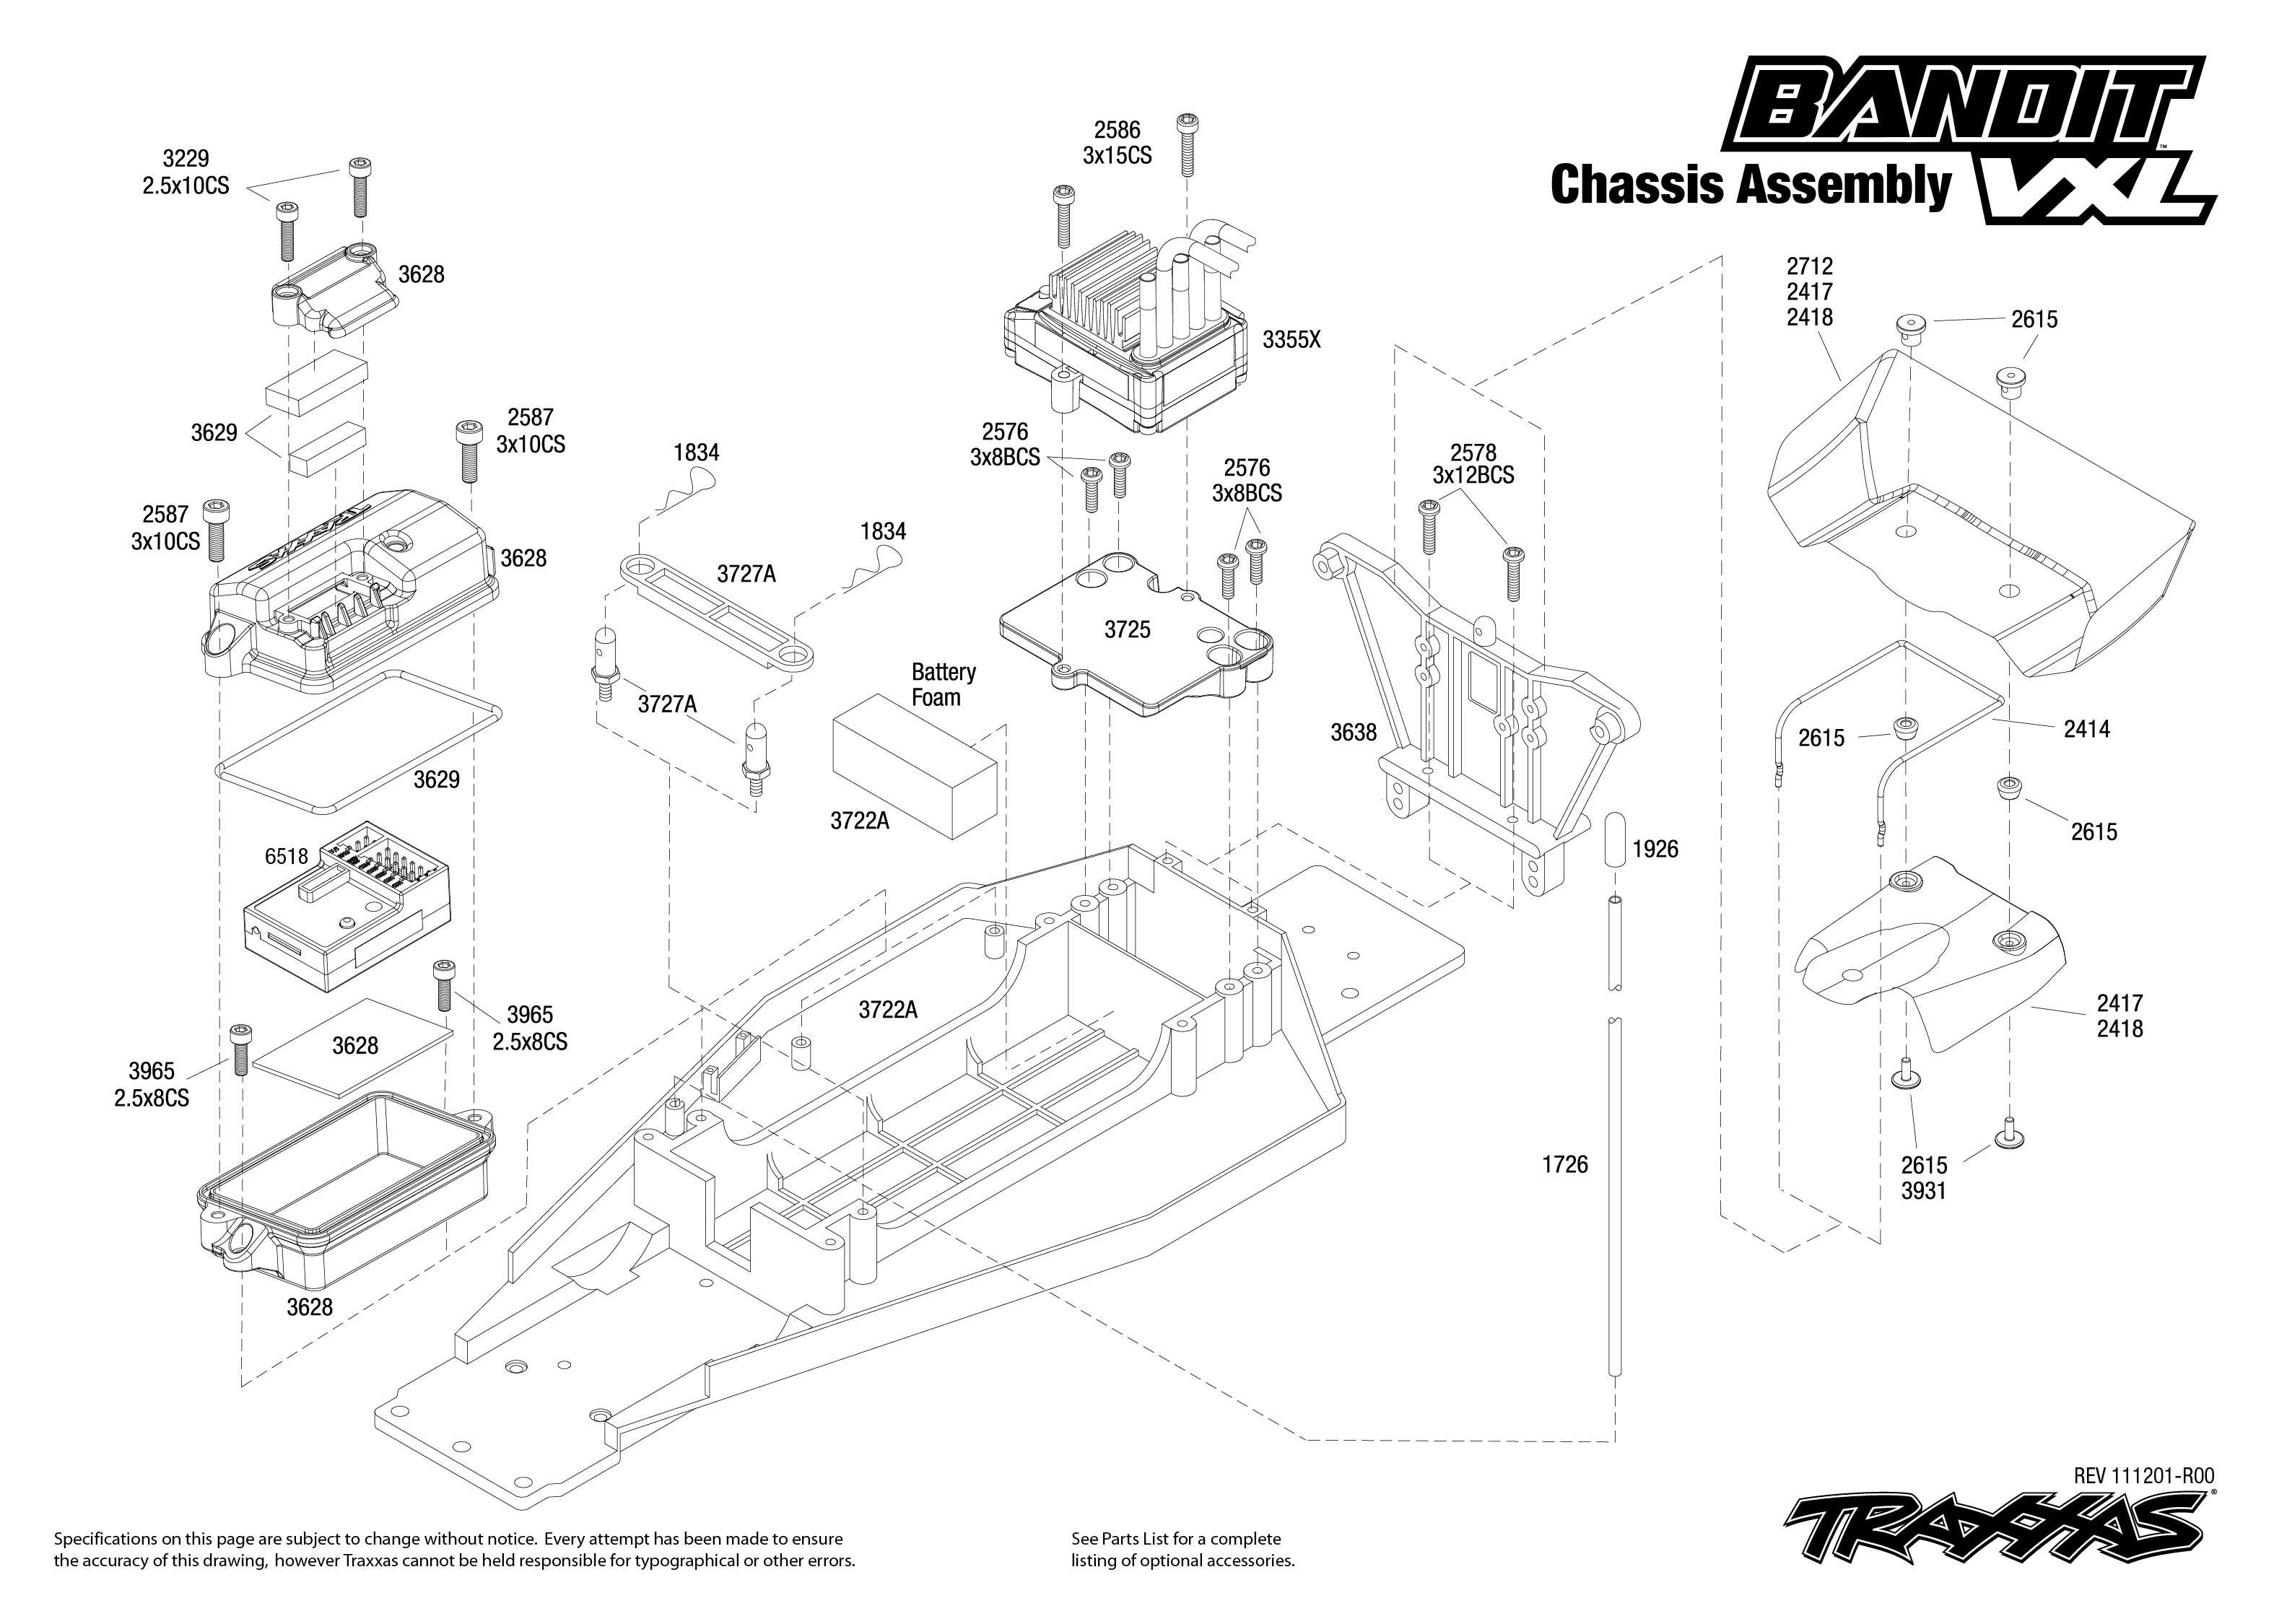 Traxxas Bouwtekening Chassis Bandit Vxl